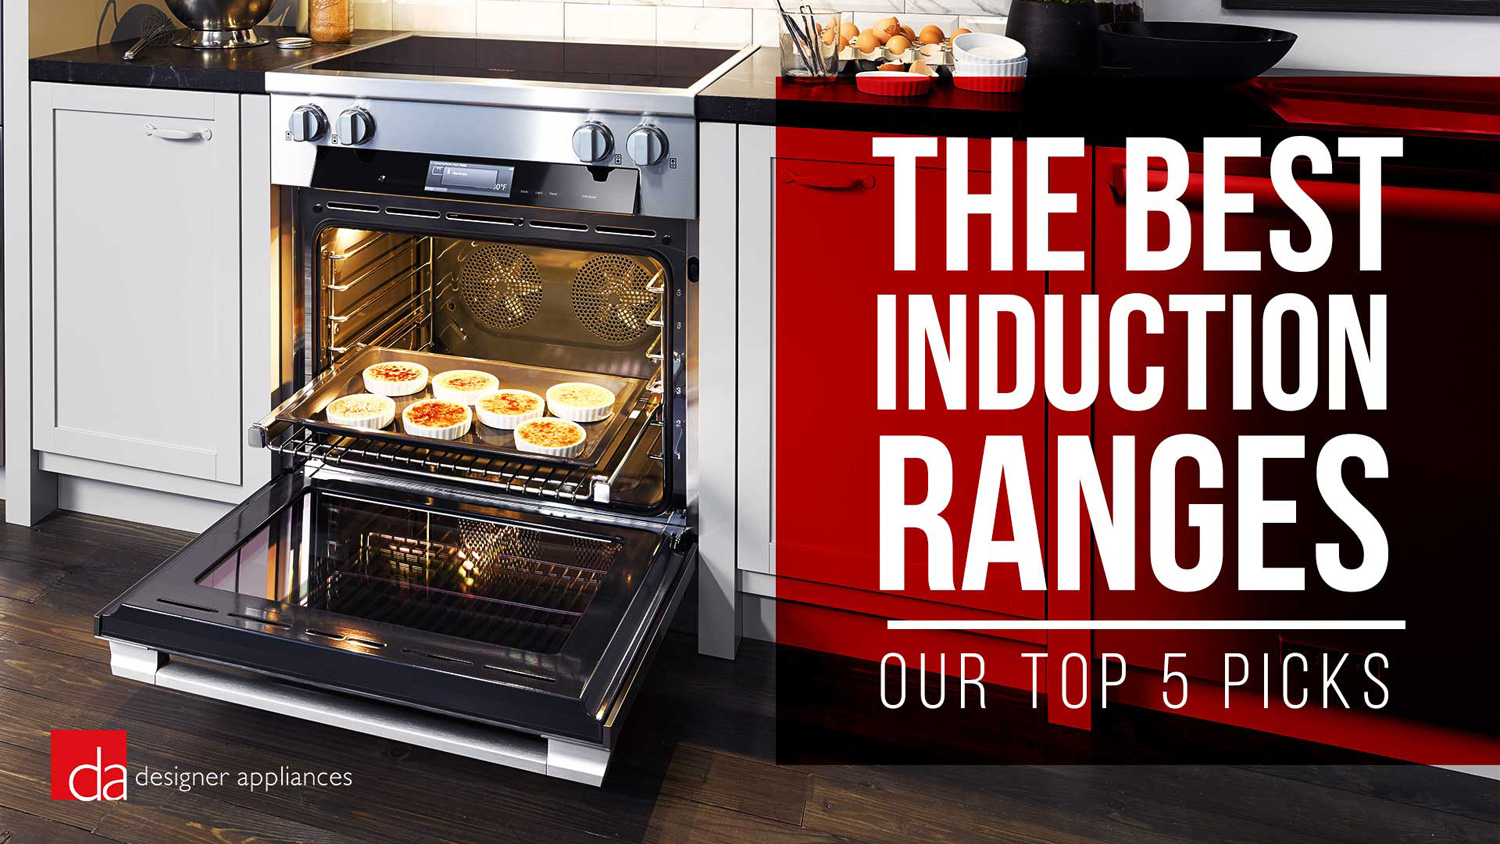 Best Induction Cookware 2021 Best Induction Ranges of 2020   Our Top 5 Picks [REVIEW & VIDEO]